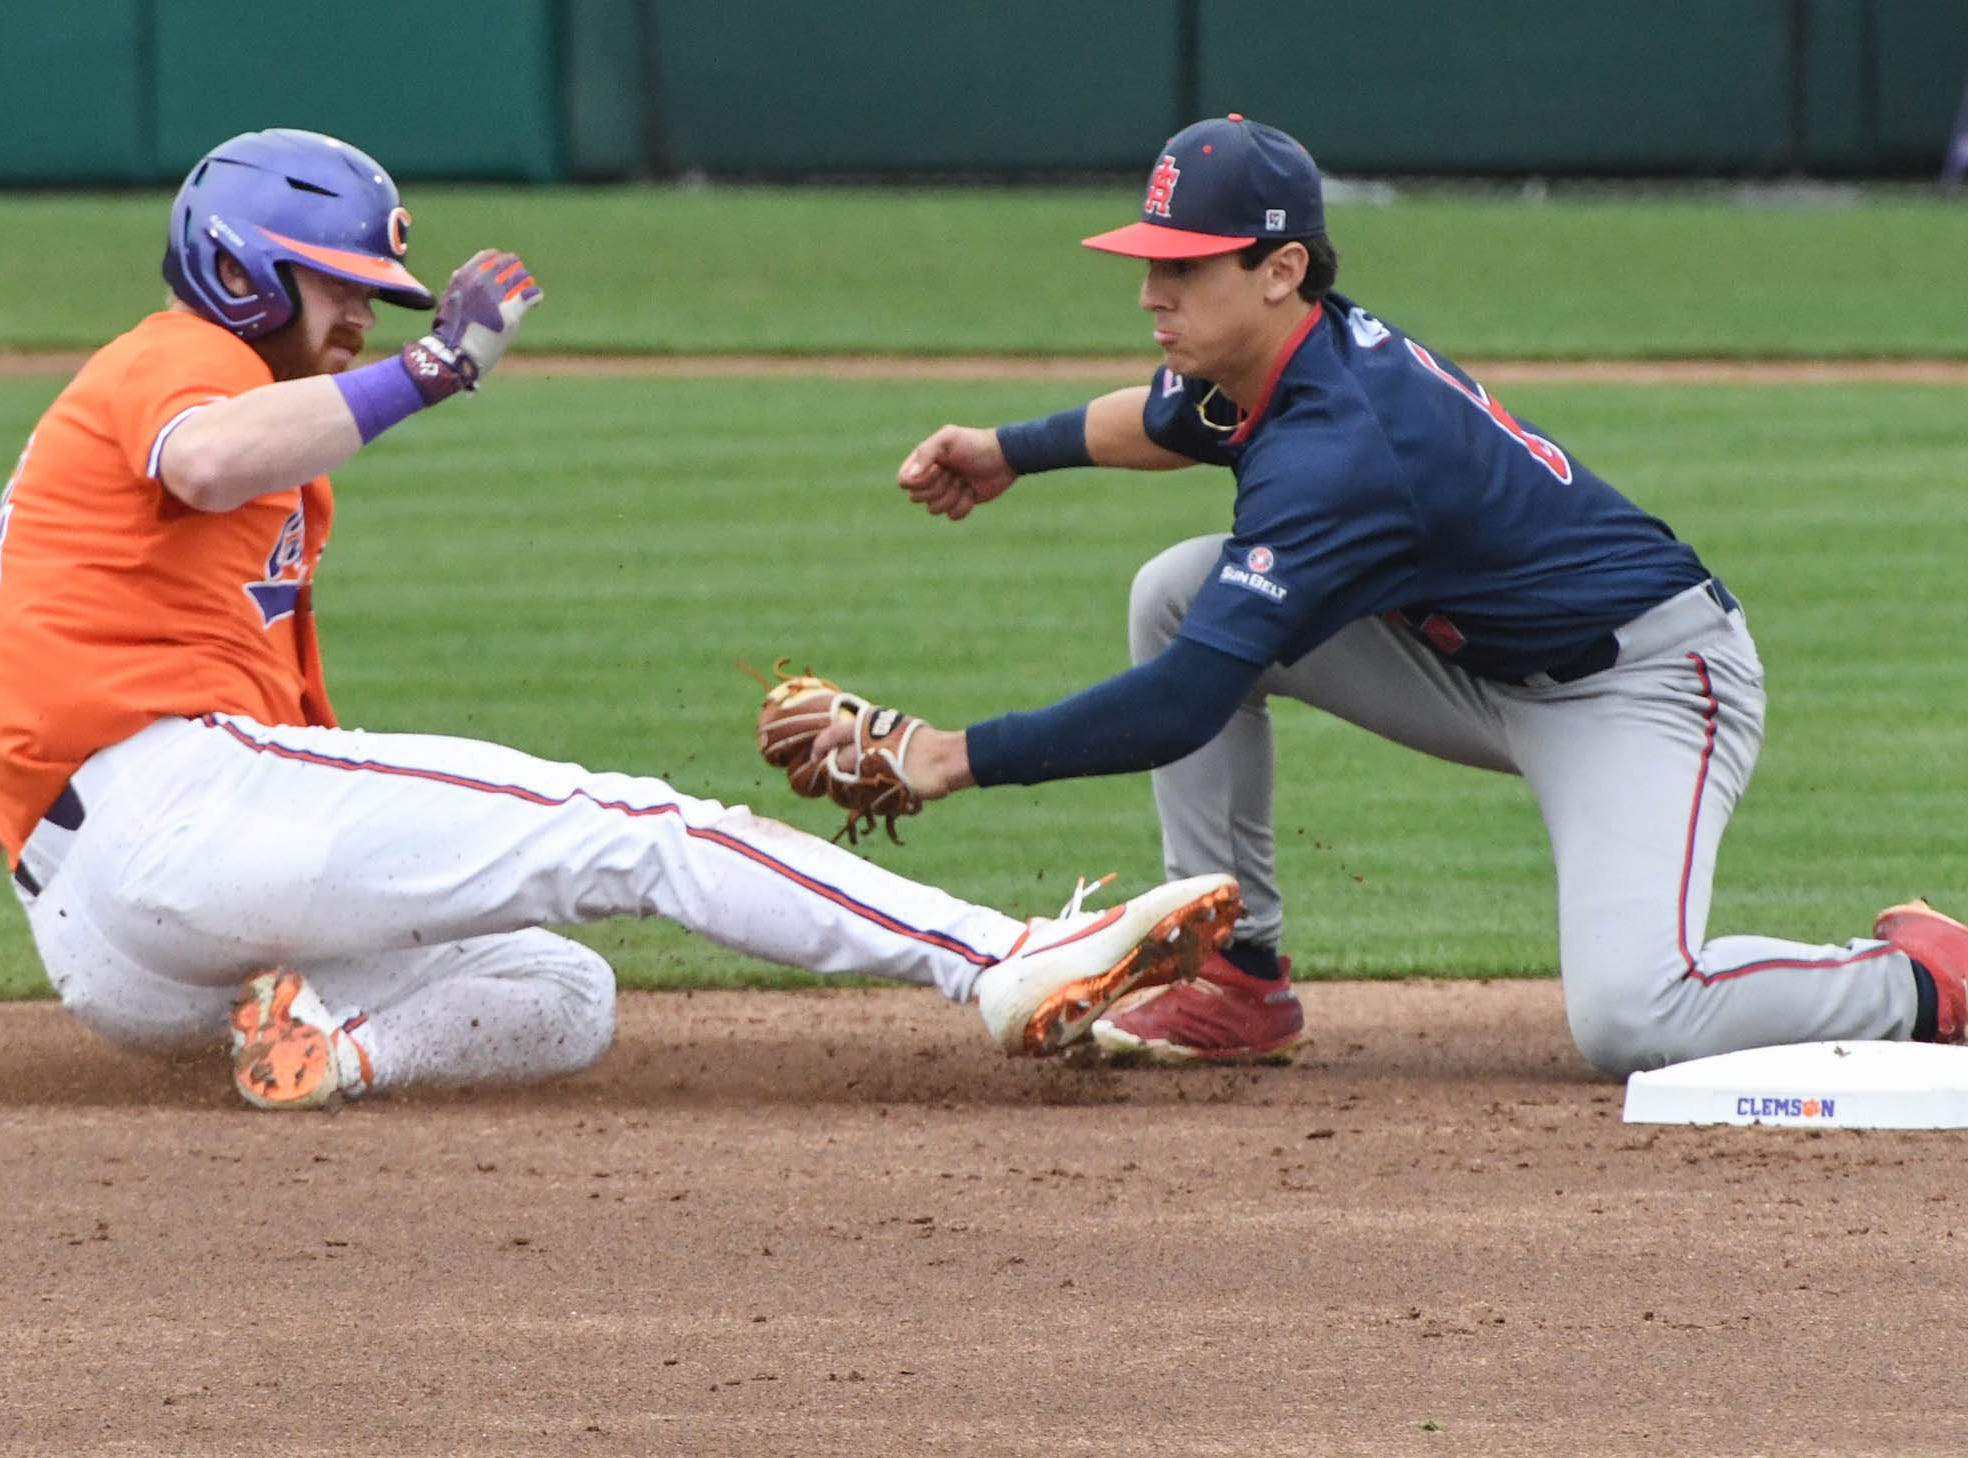 Clemson senior Grayson Byrd(4) is tagged out by South Alabama infielder Santi Montiel (6) during the top of the third inning at Doug Kingsmore Stadium in Clemson Friday, February 15, 2019.